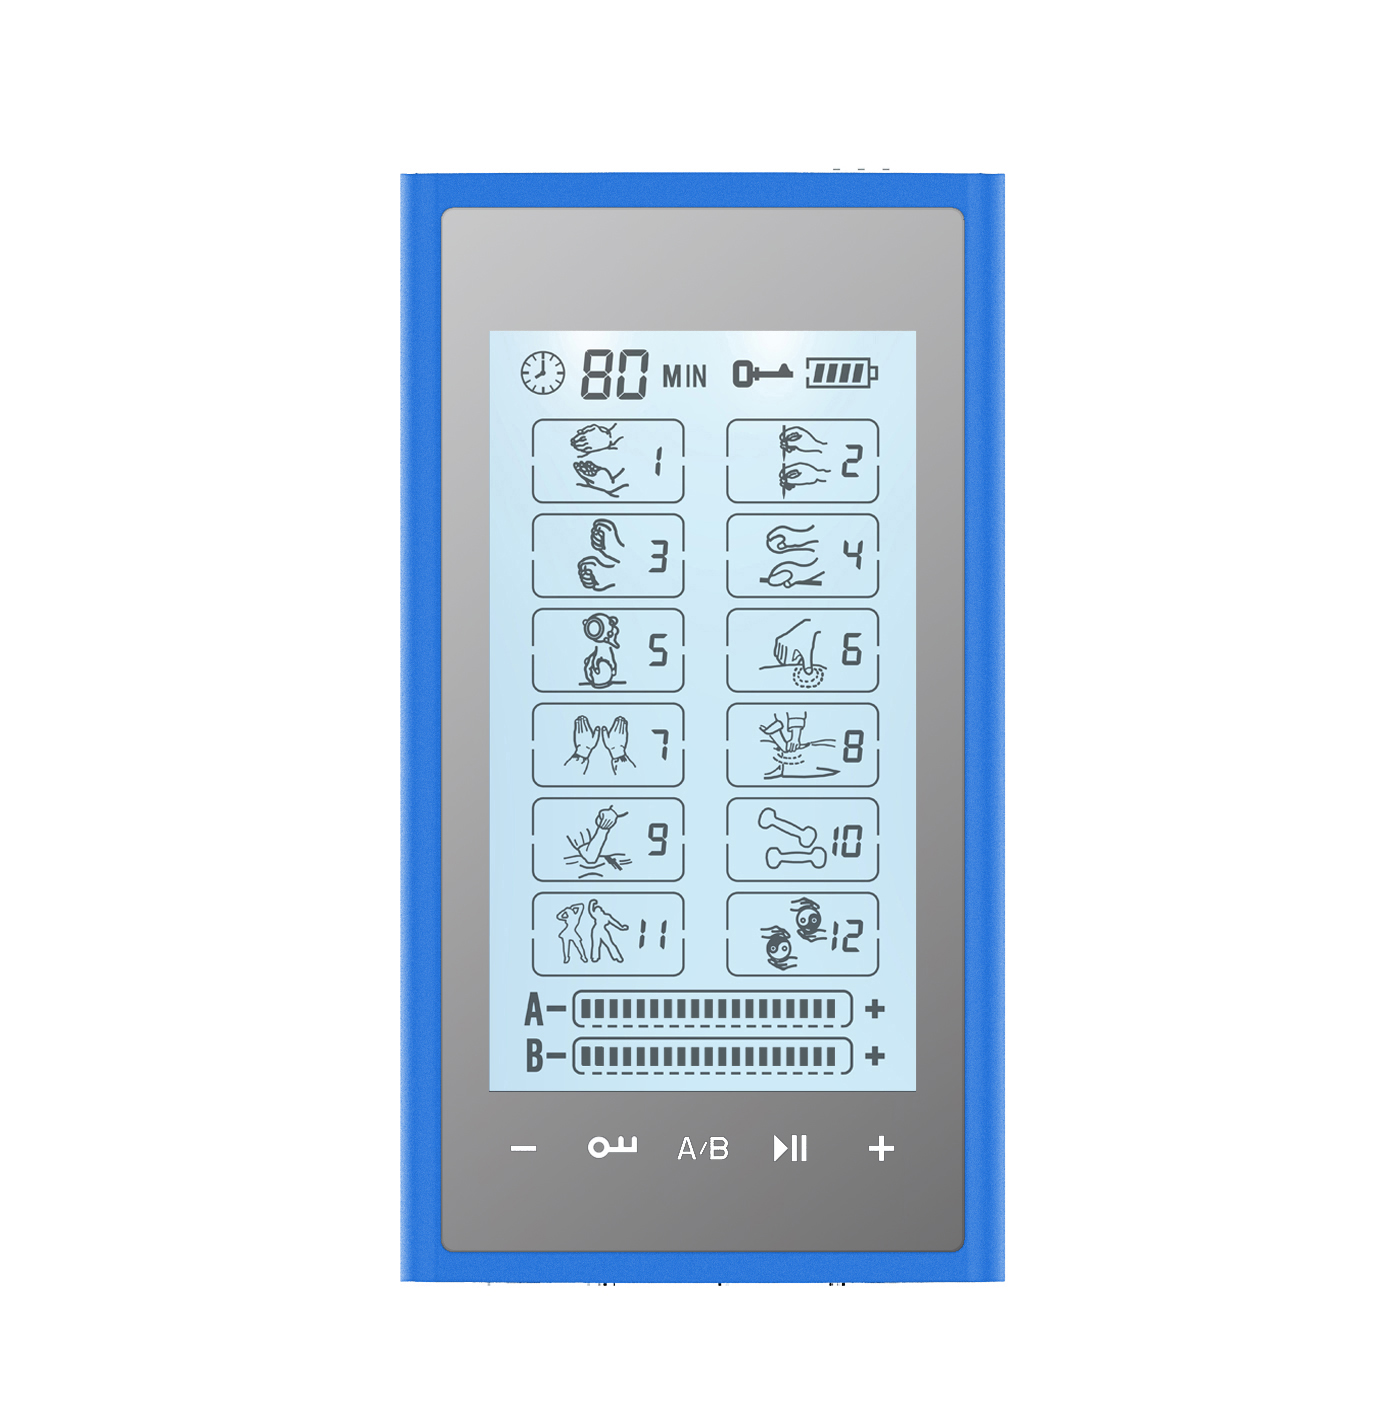 HealthmateForever T12AB2 Touch Screen TENS Muscle Recovery & Pain Therapy System (Blue on Silver)